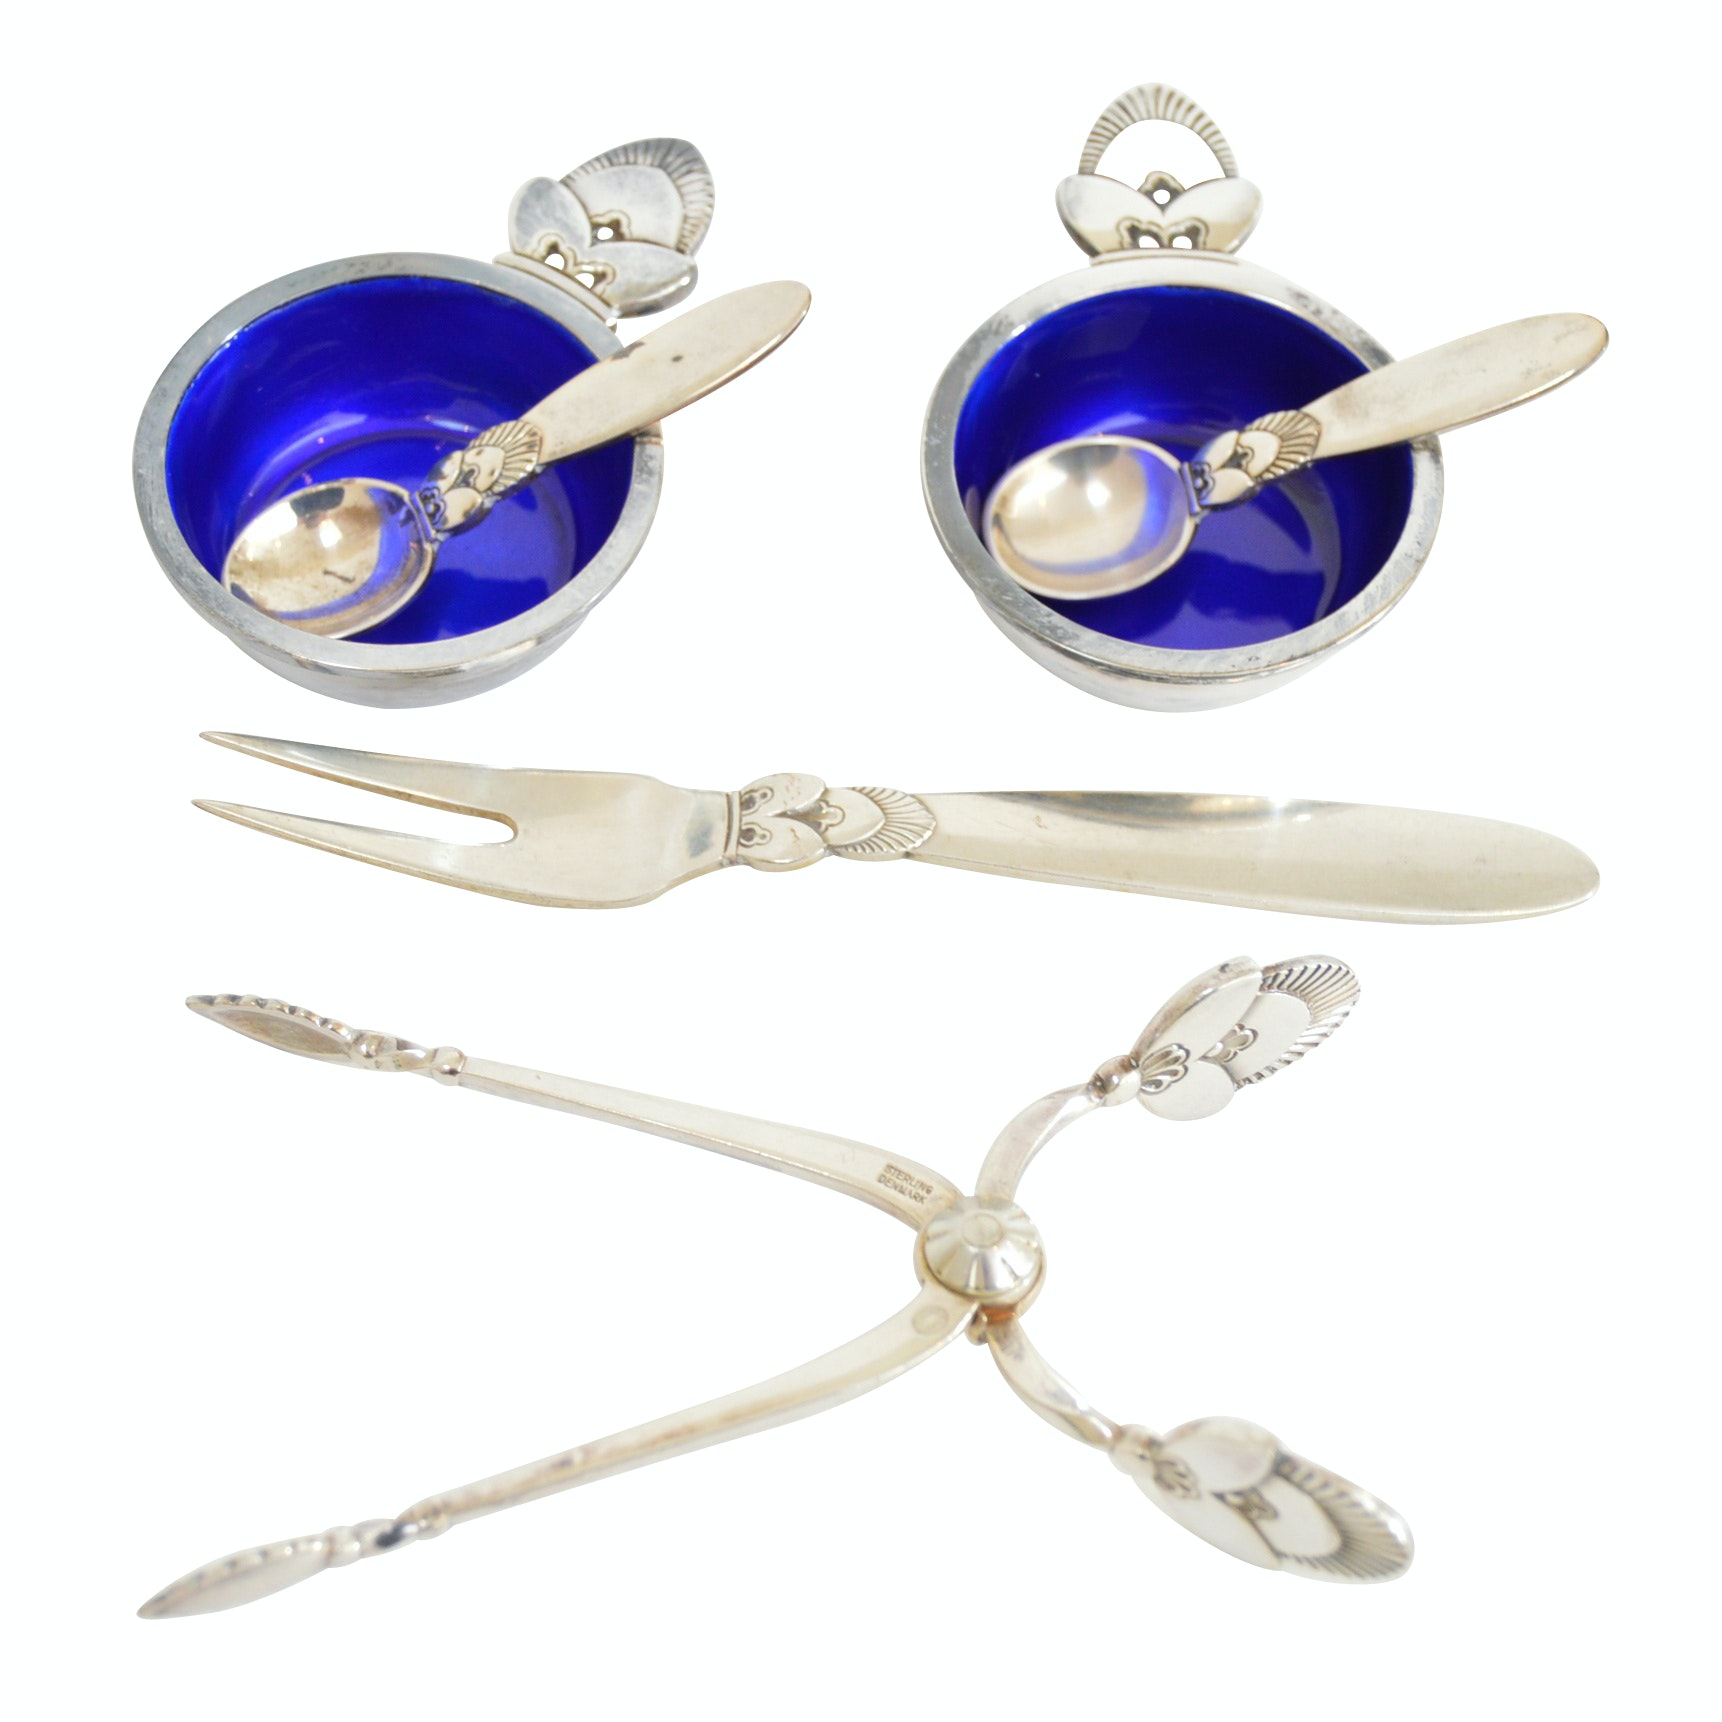 "Georg Jensen ""Cactus"" Sterling Silver Flatware and Utensils"